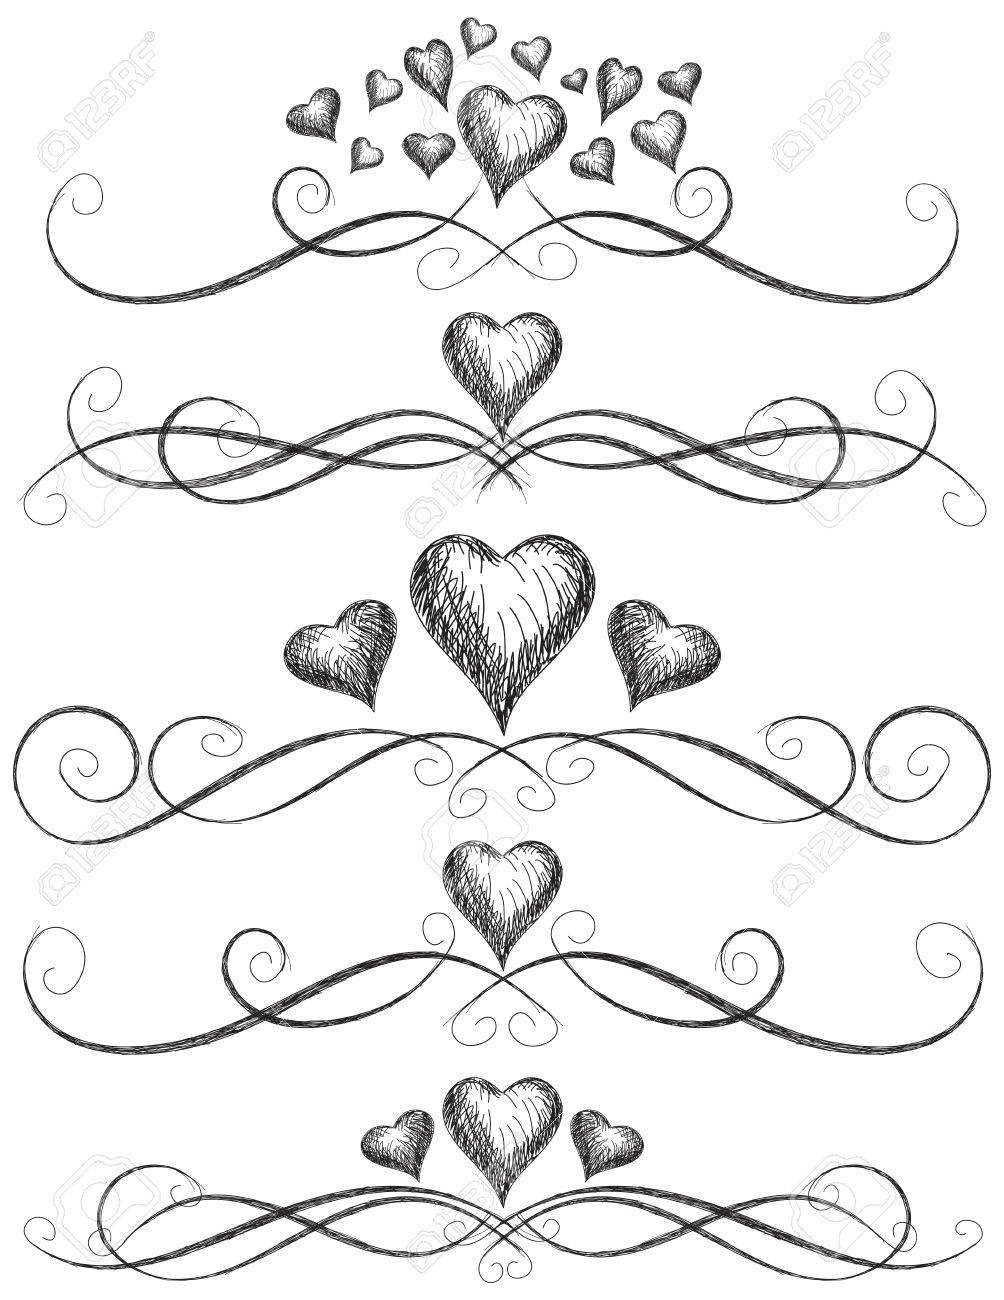 heart scroll work sketchy hearts with page rules royalty free